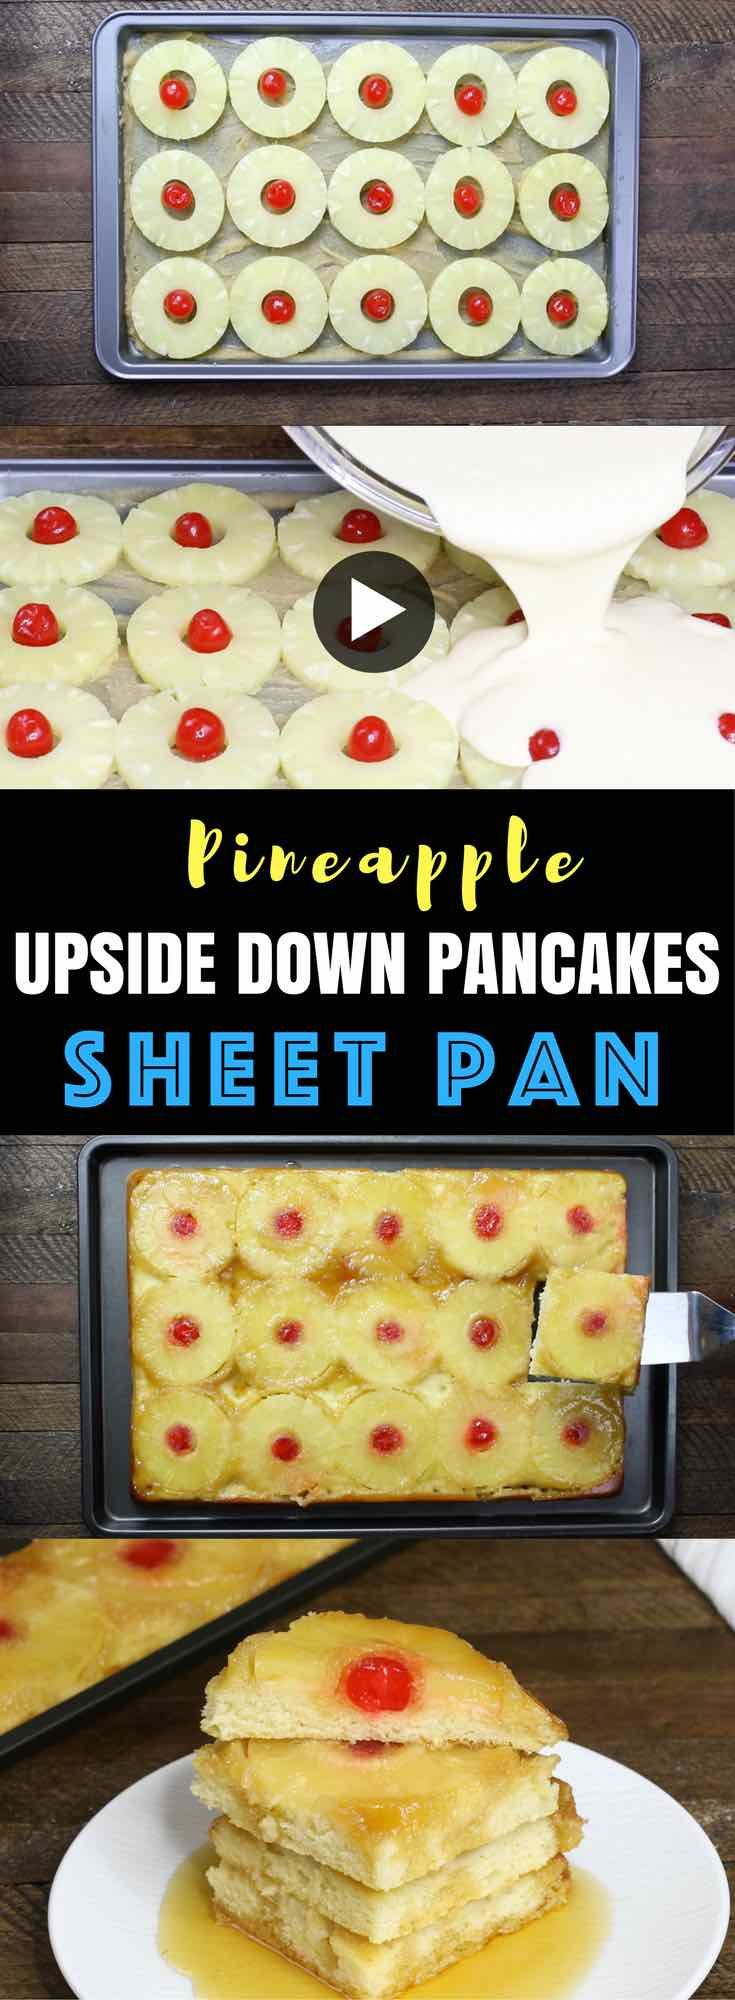 Sheet Pan Pineapple Upside Down Pancakes – combines mouth-watering caramelized sugar, sweet pineapple and cherries on fluffy pancakes! Make it in a sheet pan to save time and feed a crowd for breakfast or brunch (and less mess too!) All you need is some simple recipes: pancake mix, milk, eggs, brown sugar, butter, pineapple and maraschino cherries. So Good! Quick and easy recipe, breakfast and brunch. video recipe.   Tipbuzz.com